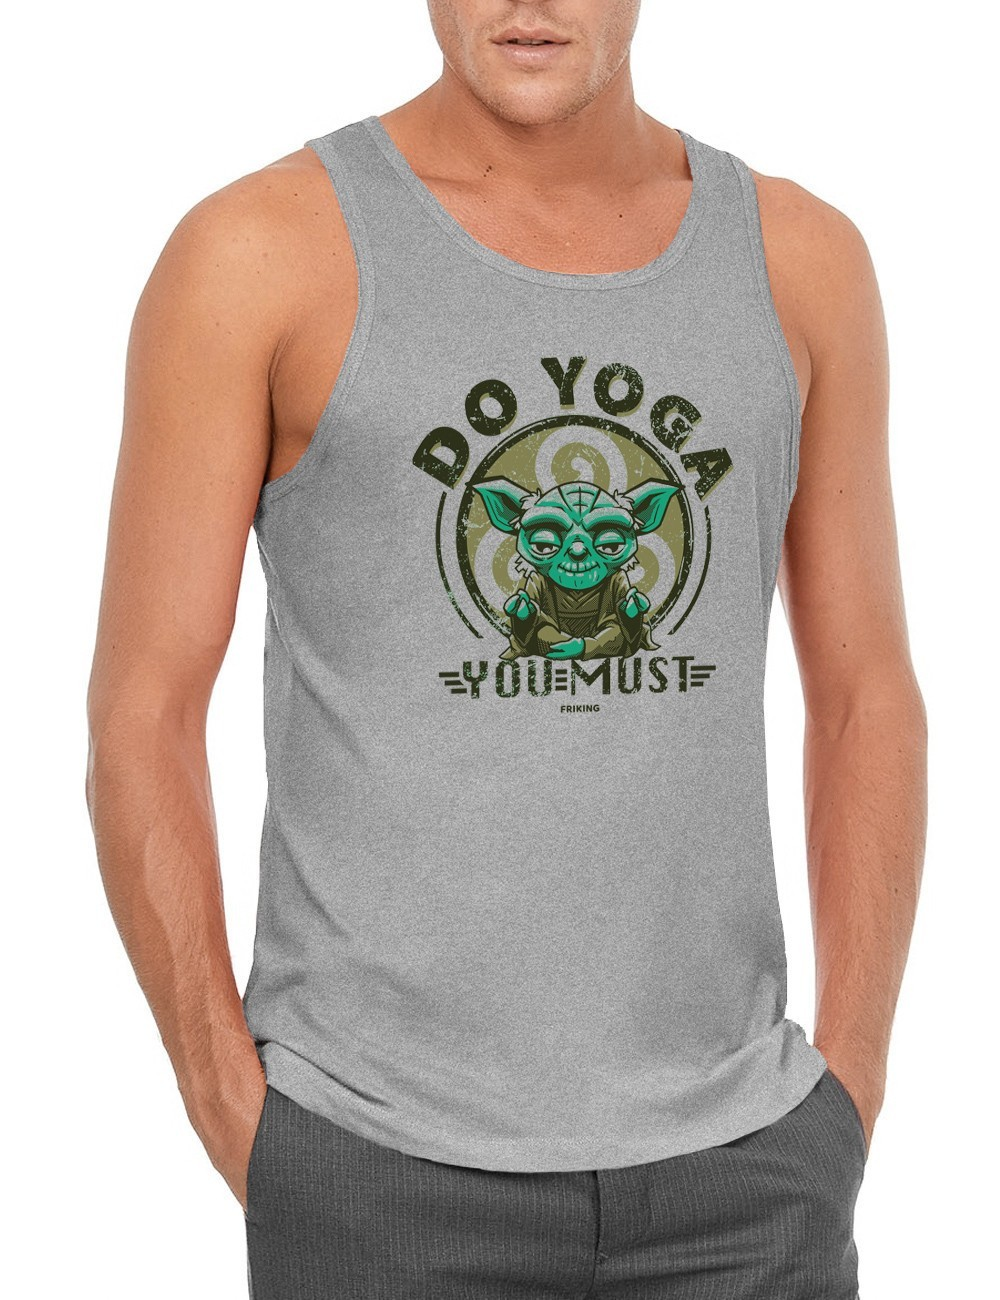 Do yoga you must